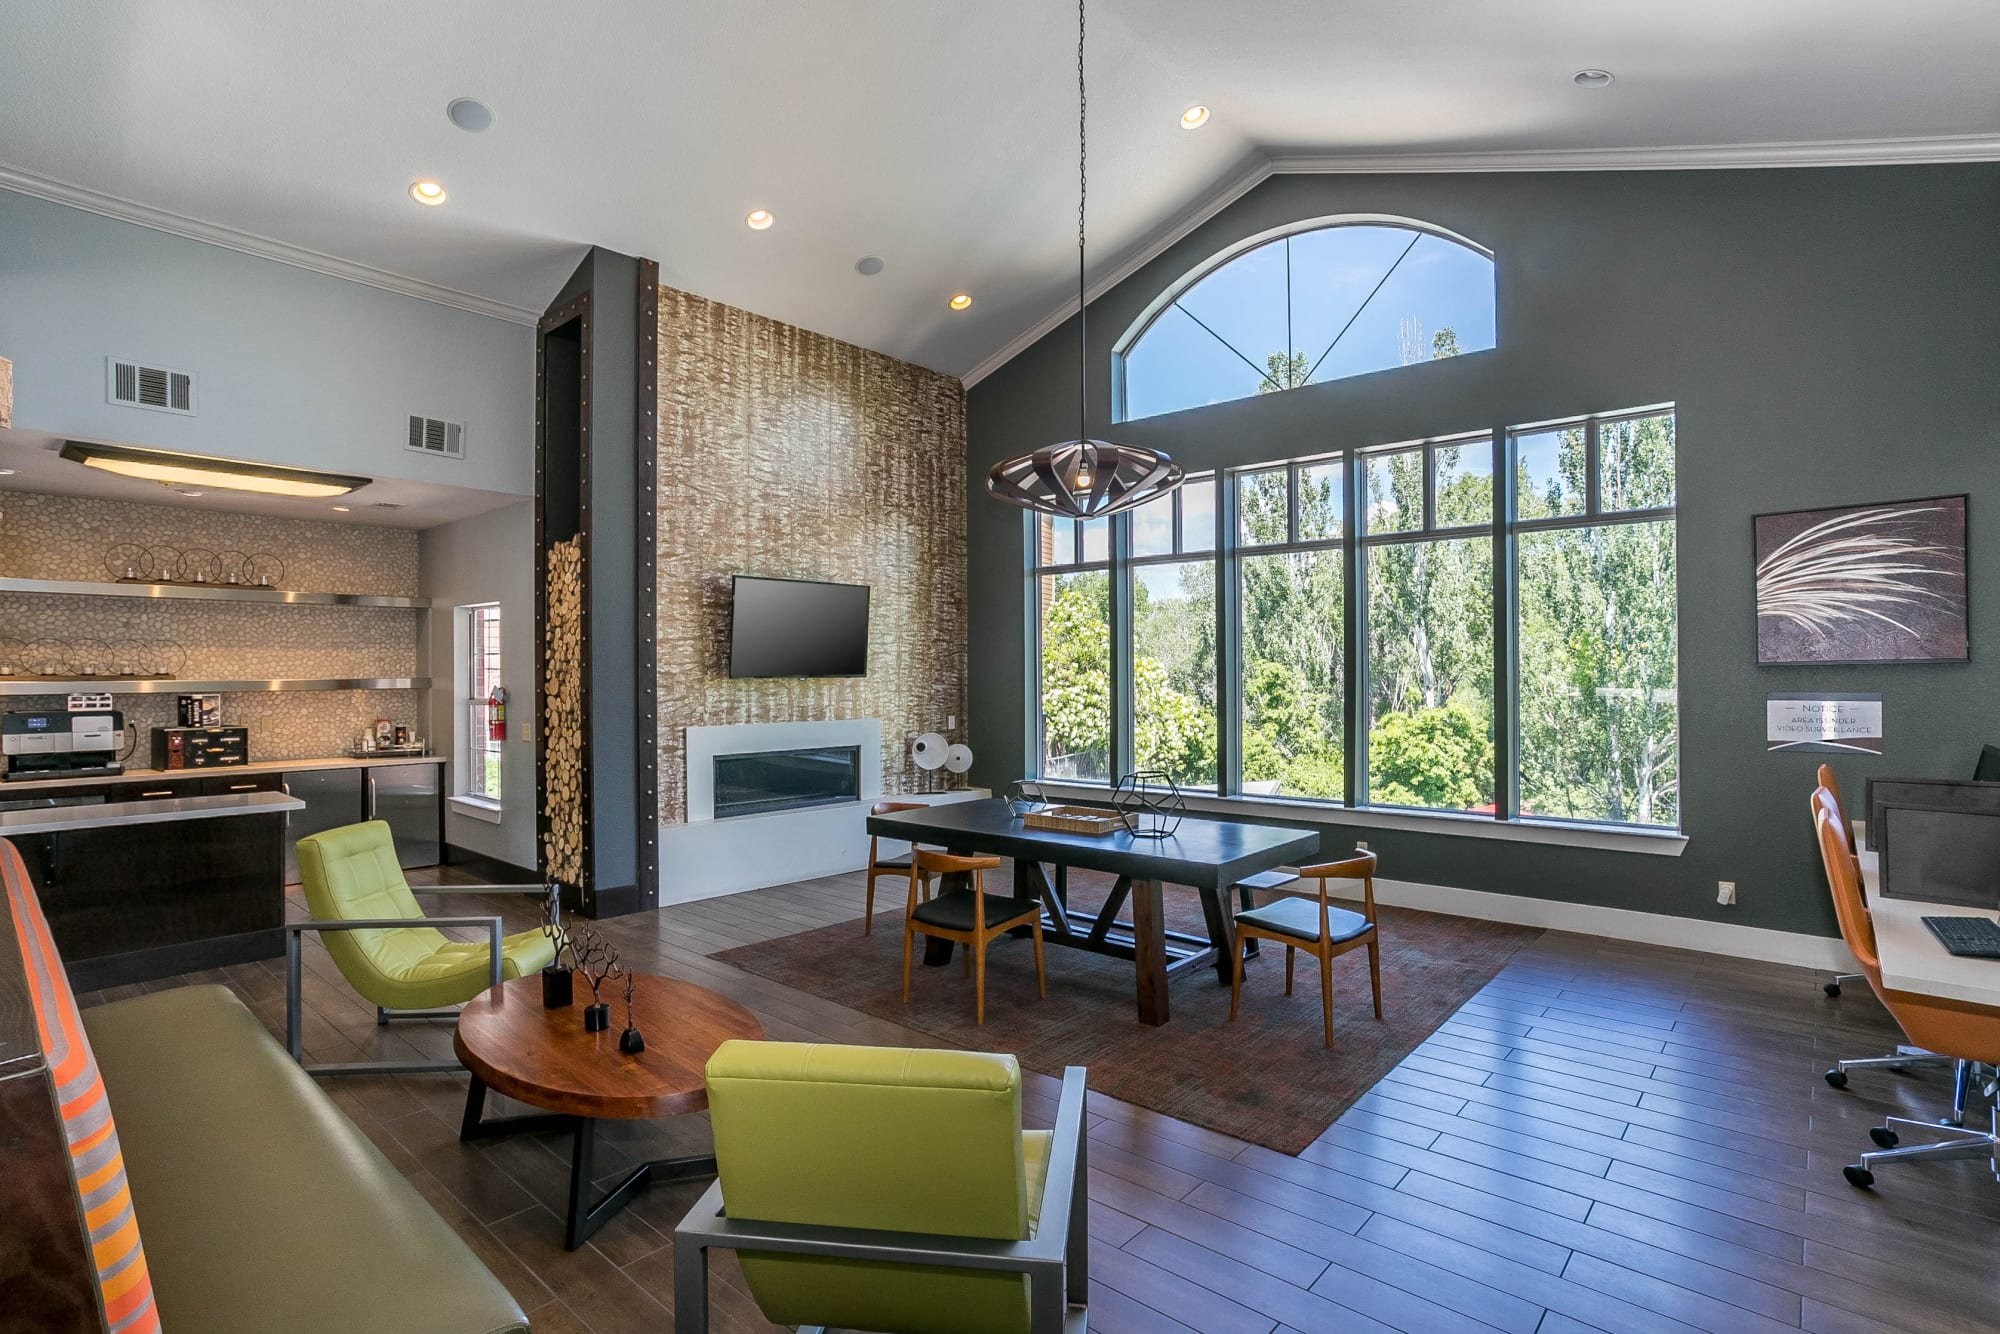 interior clubhouse lounge with conference table and fireplace